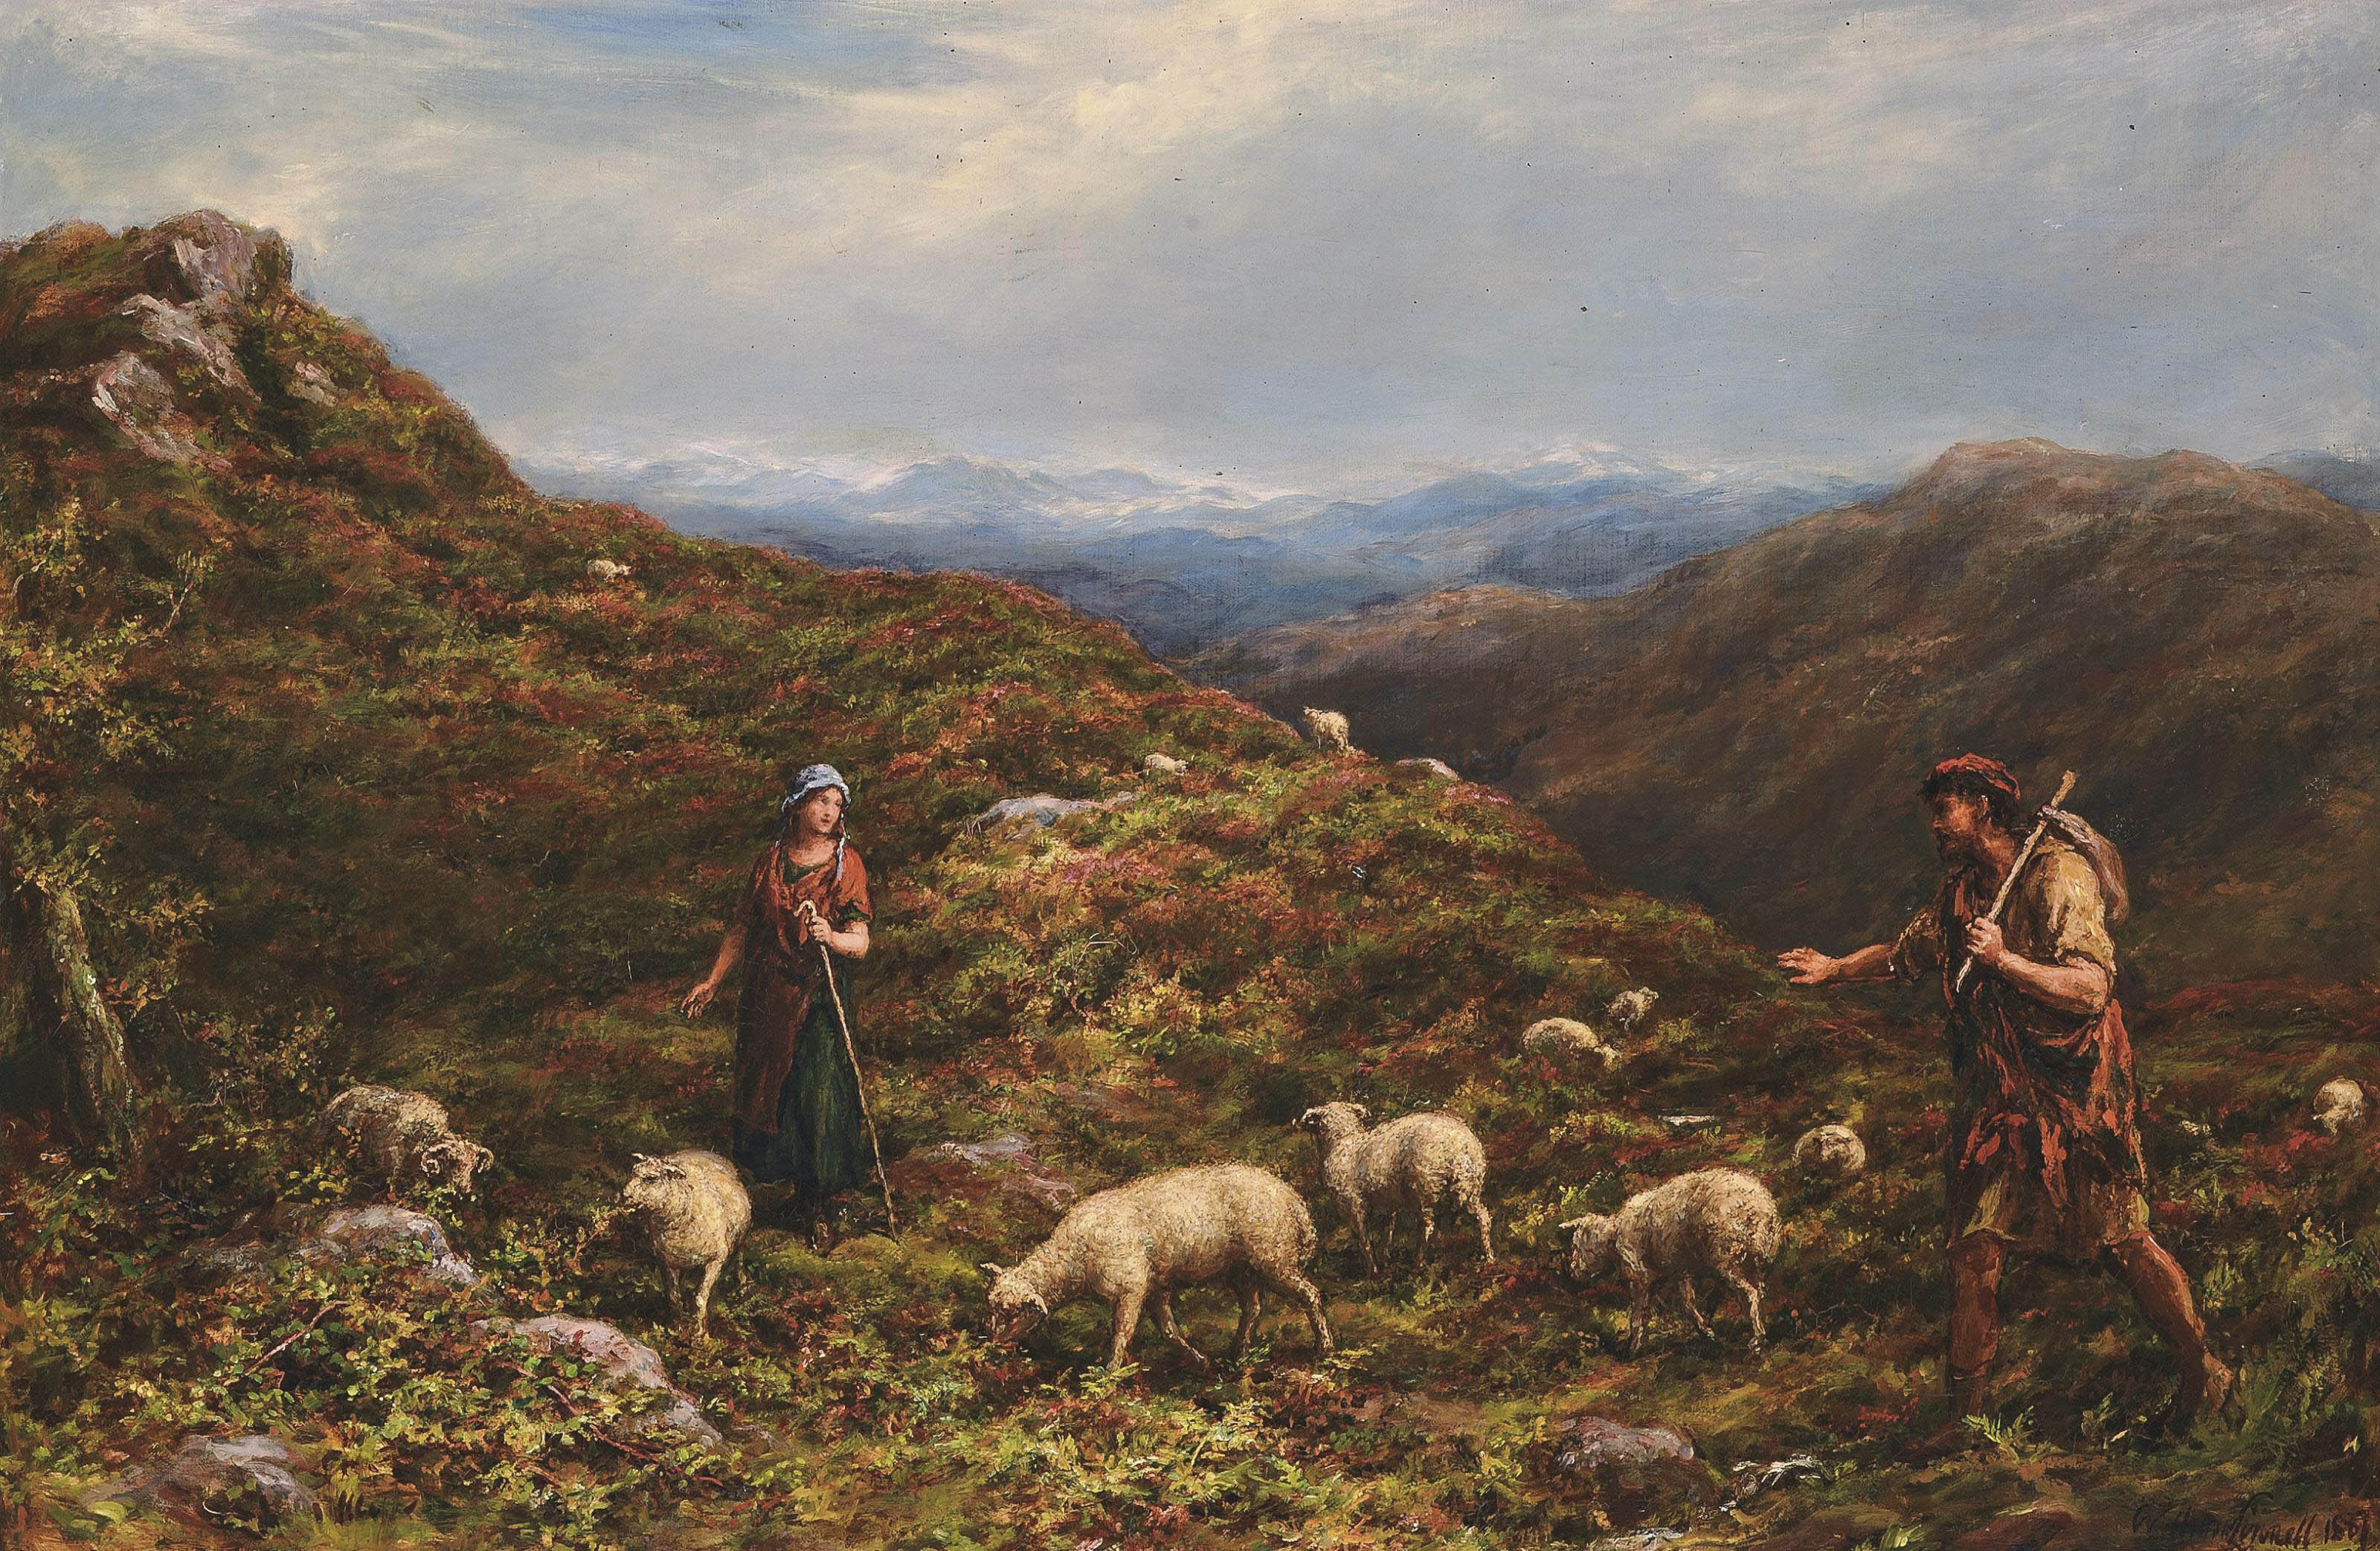 A chance meeting in the Highlands